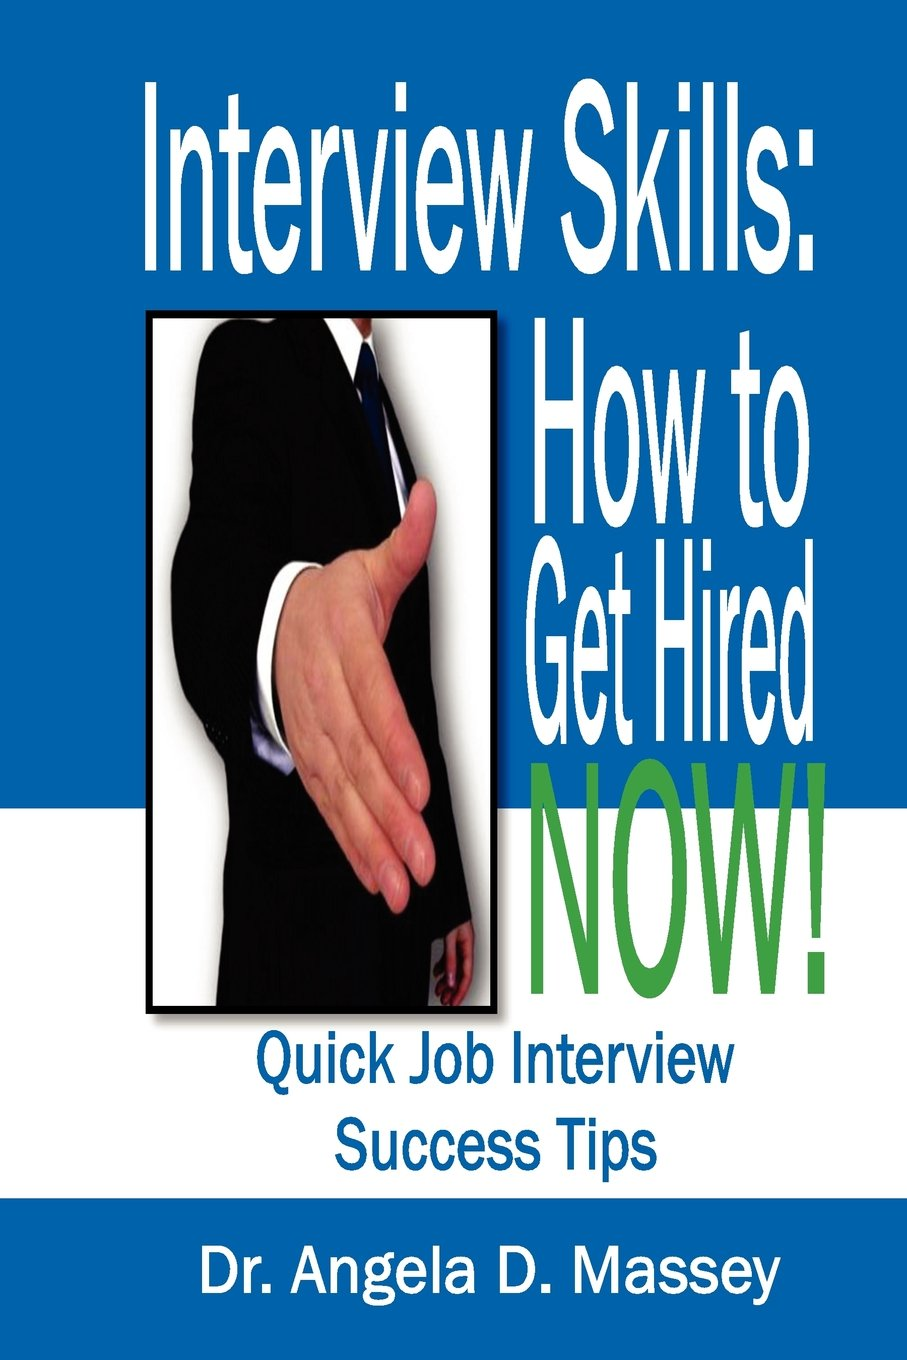 Interview Skills: How to Get Hired Now